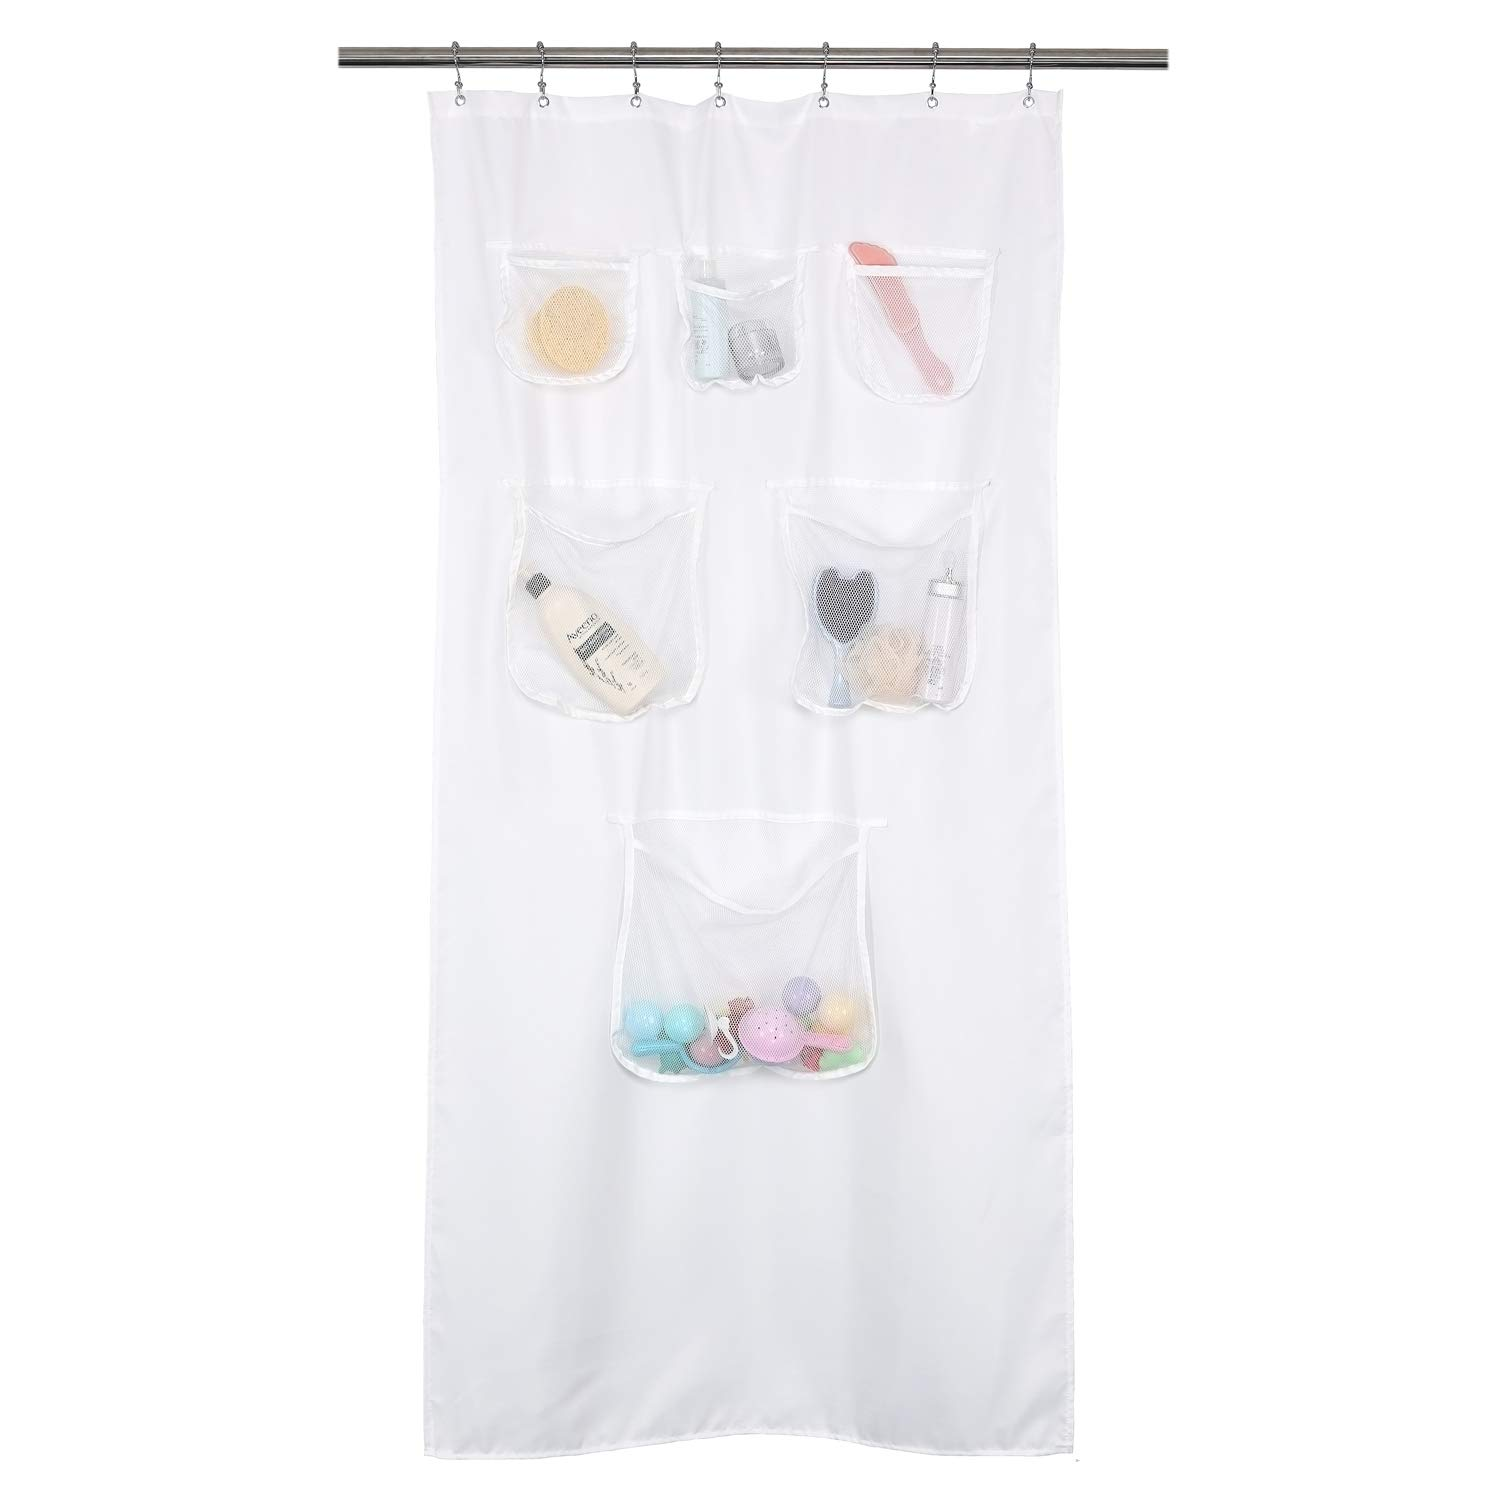 Mrs Awesome Fabric Stall Shower Curtain or Liner with 6 Mesh Pocket - 36 x 72 inch, Water Repellent, Odorless, Washable and Rust Proof Grommets